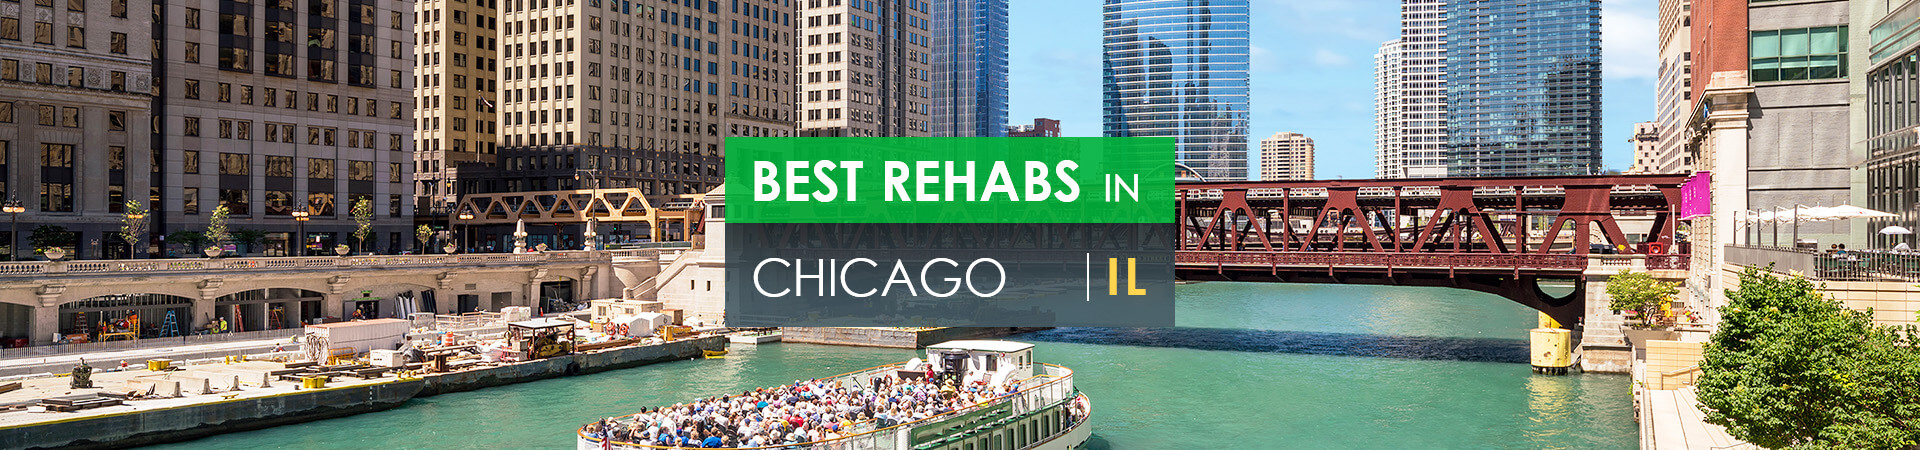 Best rehabs in Chicago, IL